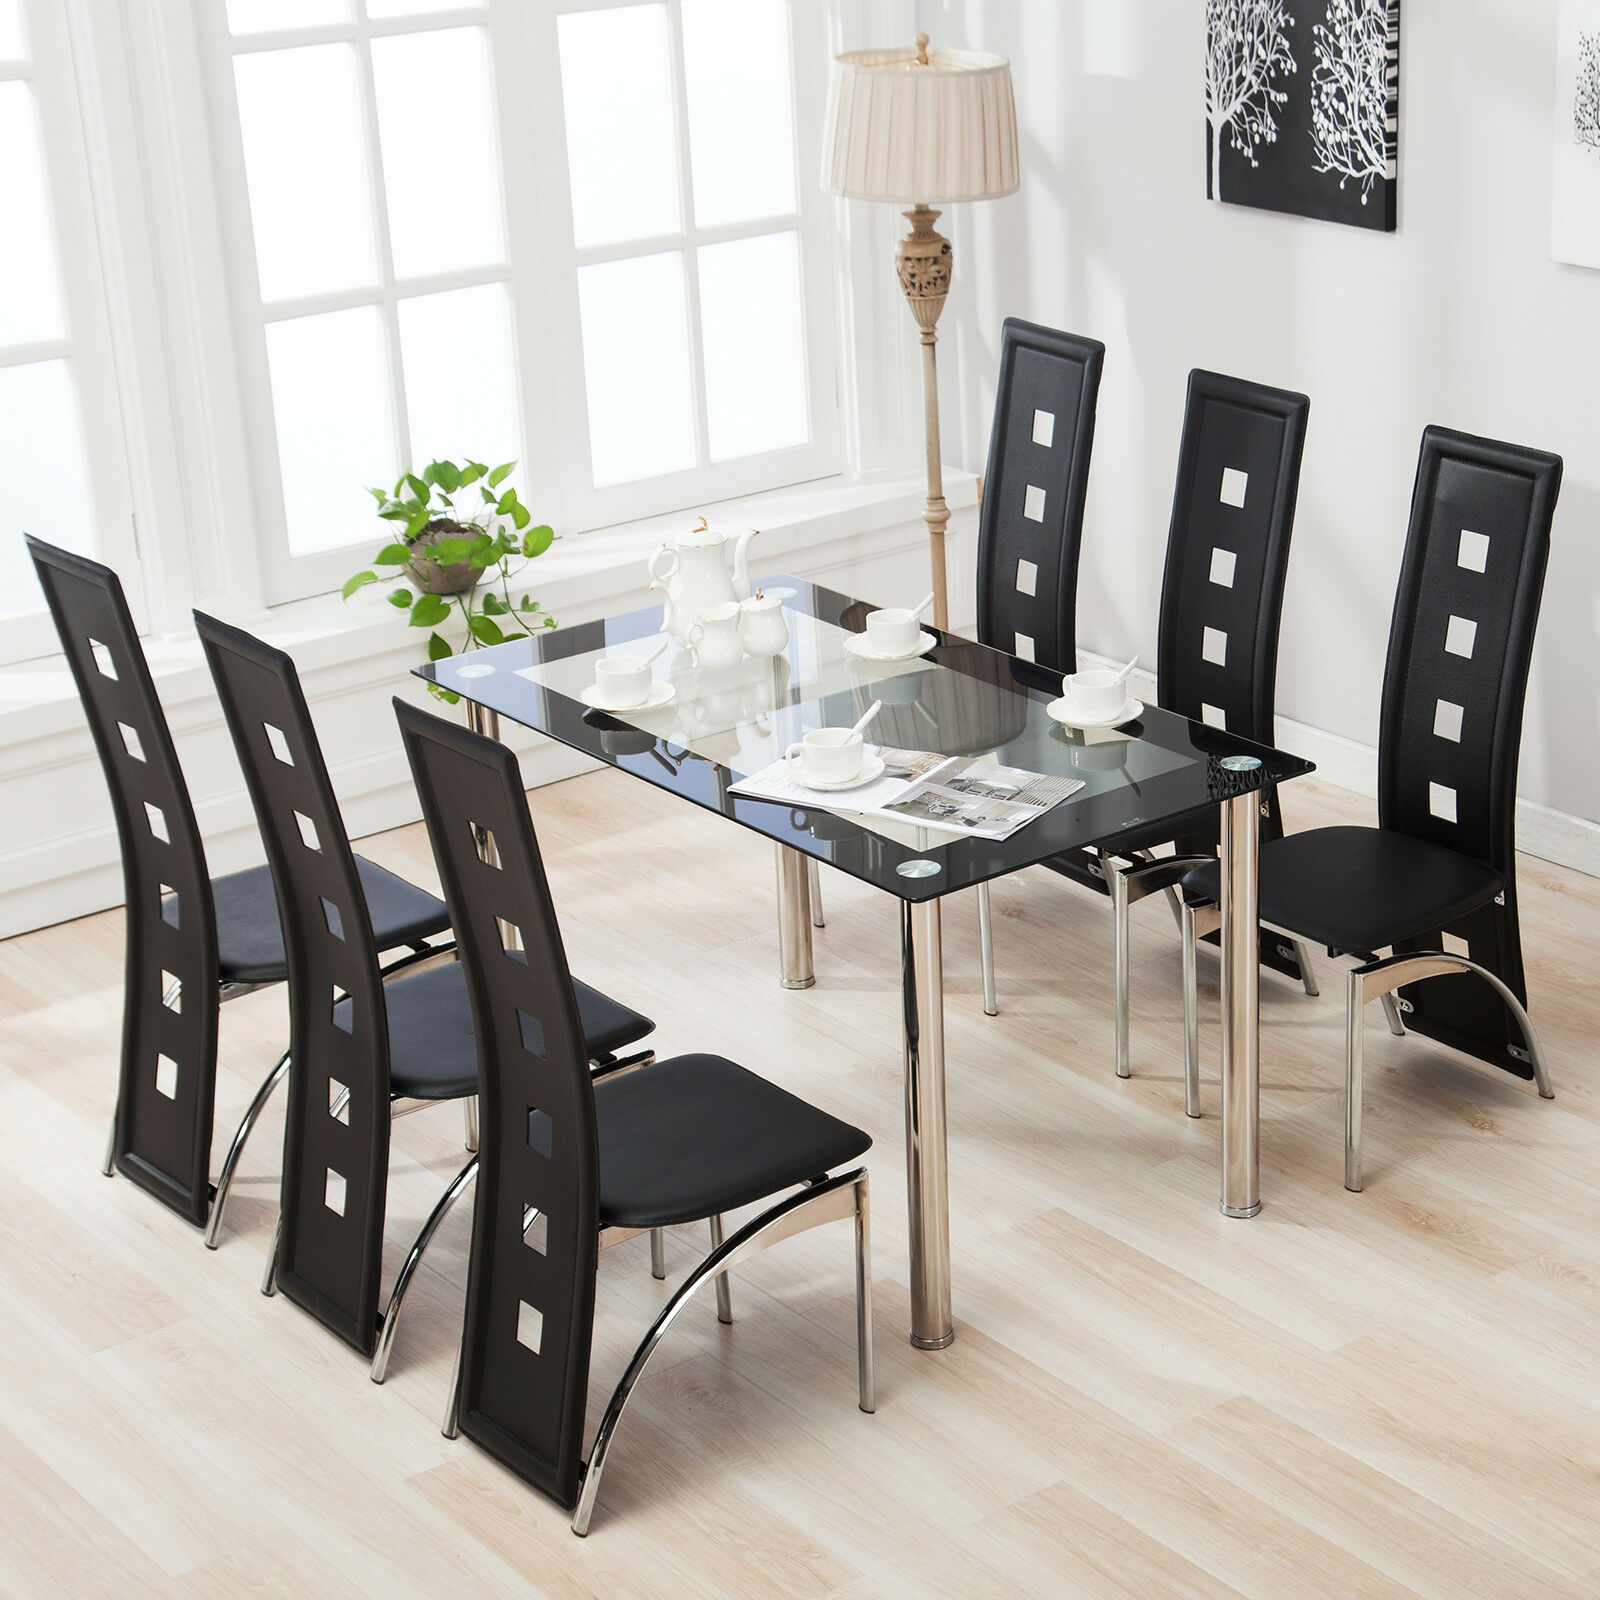 7b0cfe5f7cf 7 piece dining table set with 6 chairs glass metal kitchen breakfastnew 7 piece  dining table